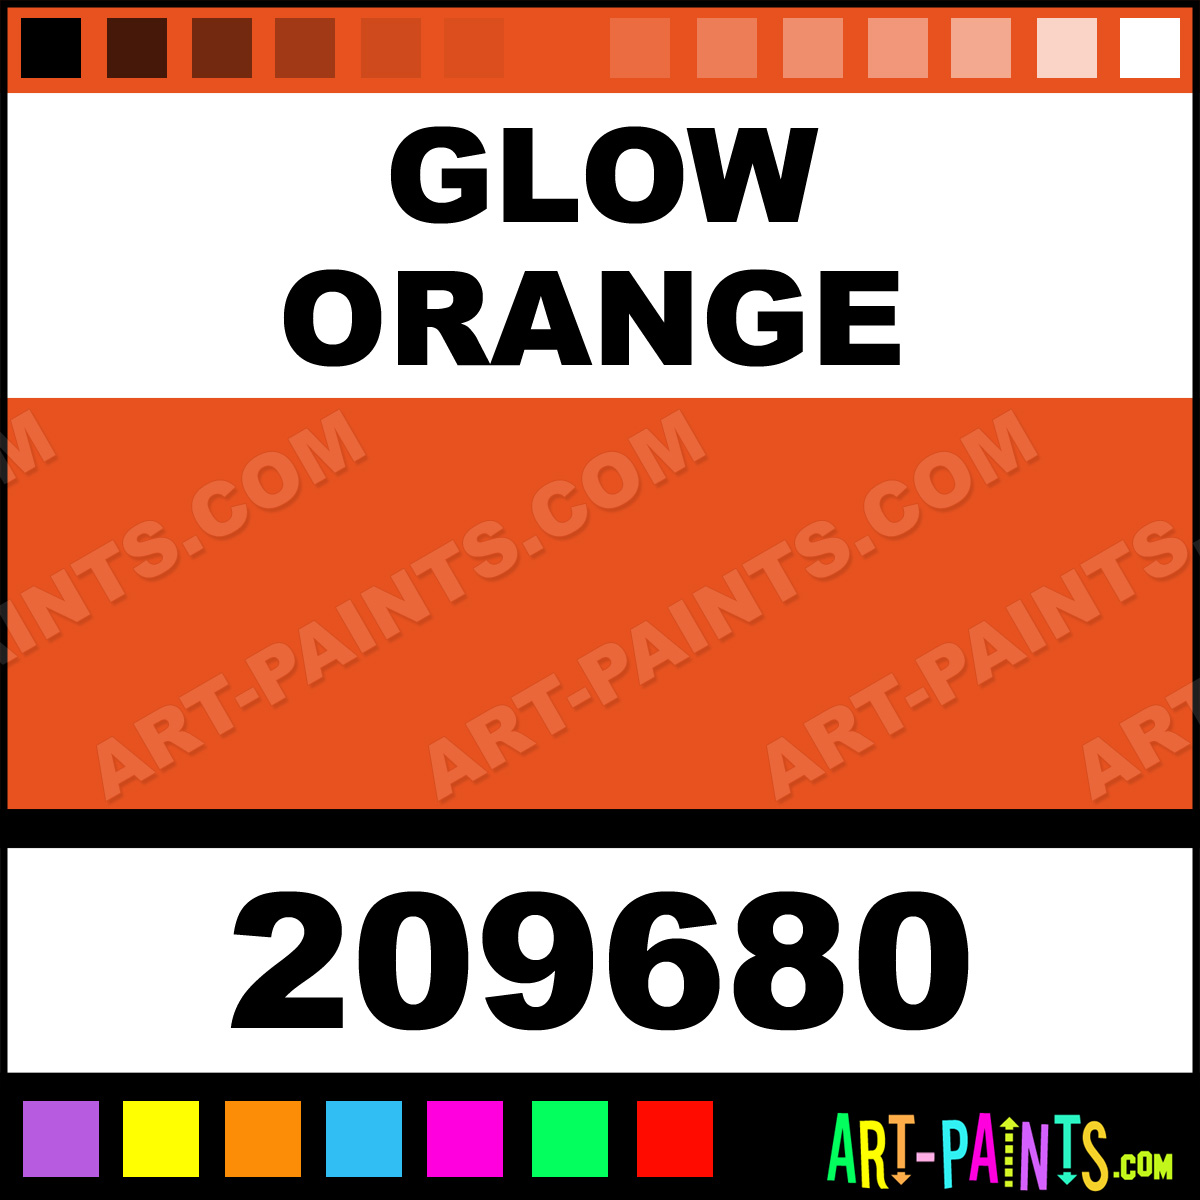 glow orange craft and hobby spray paints 209680 glow orange paint. Black Bedroom Furniture Sets. Home Design Ideas